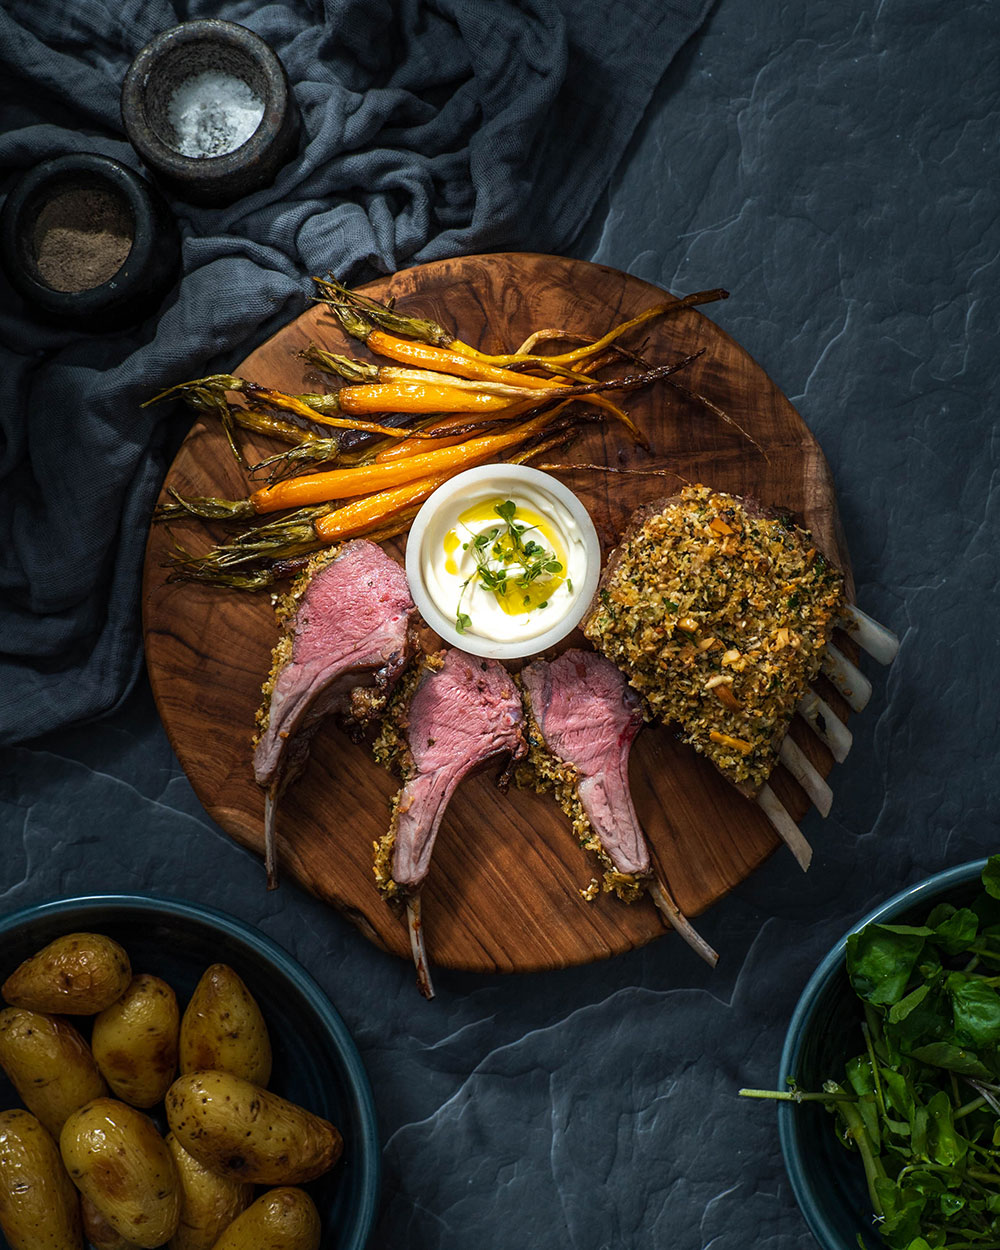 The Honest Grocer crusted lamb rack with baby carrots, potatoes and side salad